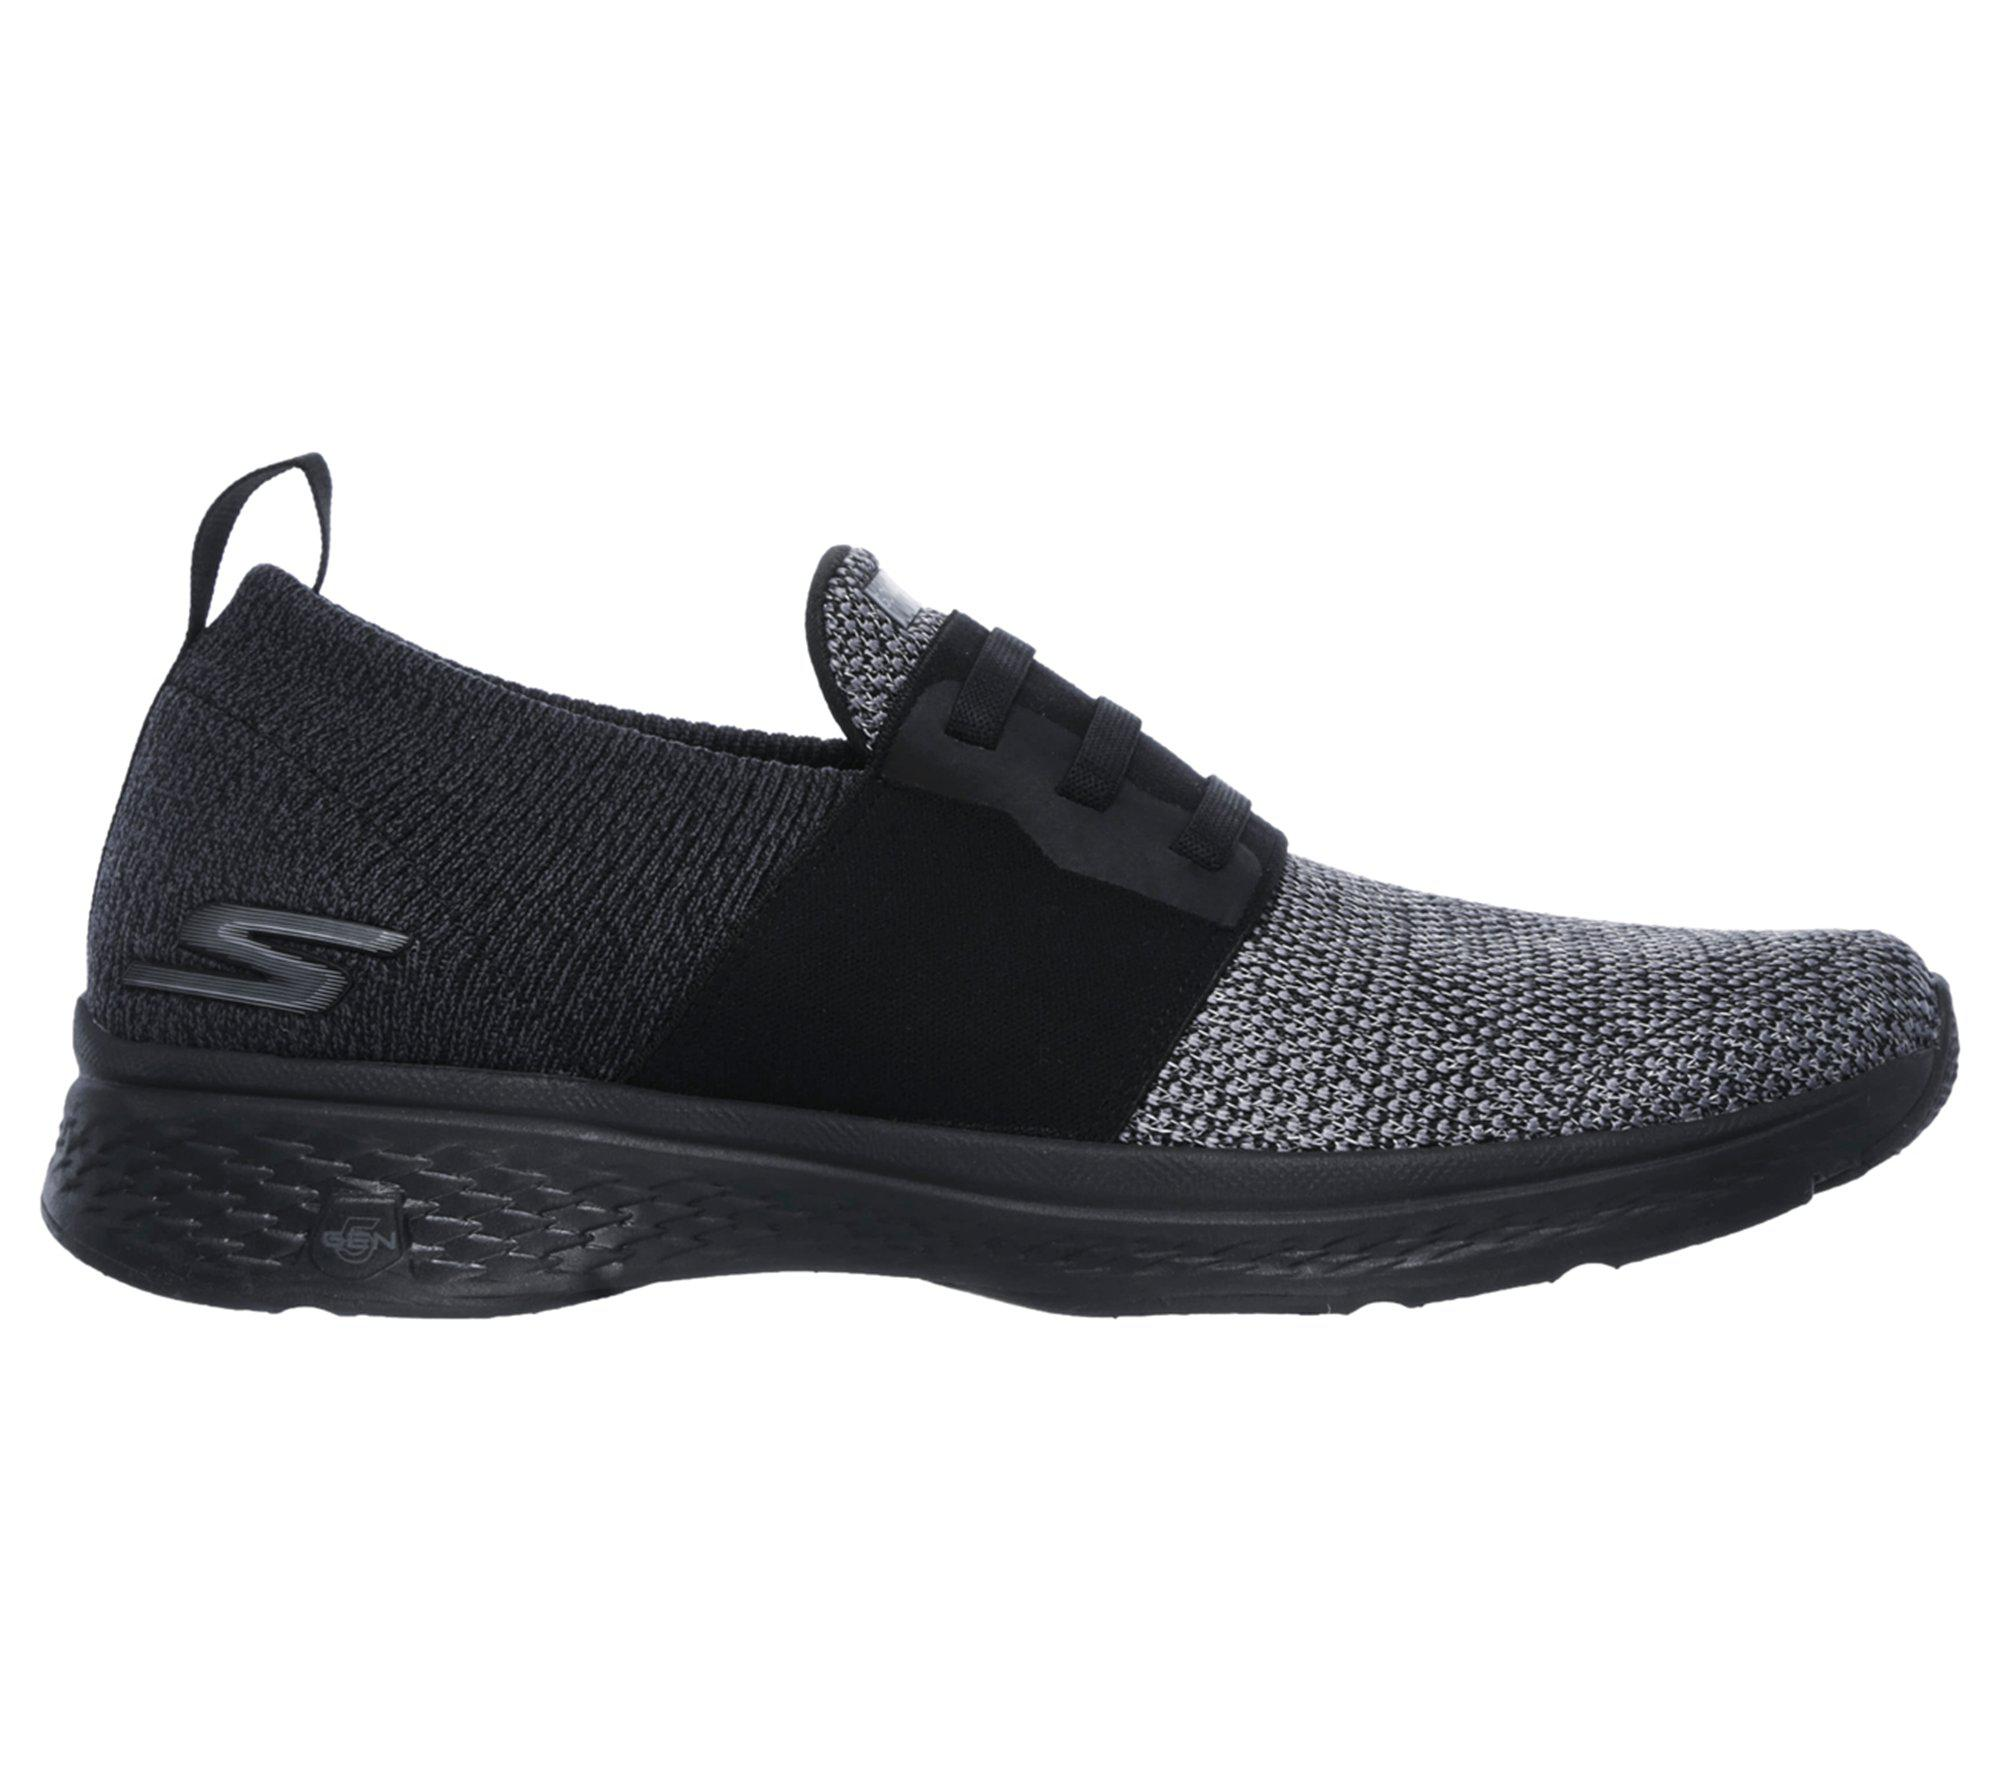 skechers go walk sport